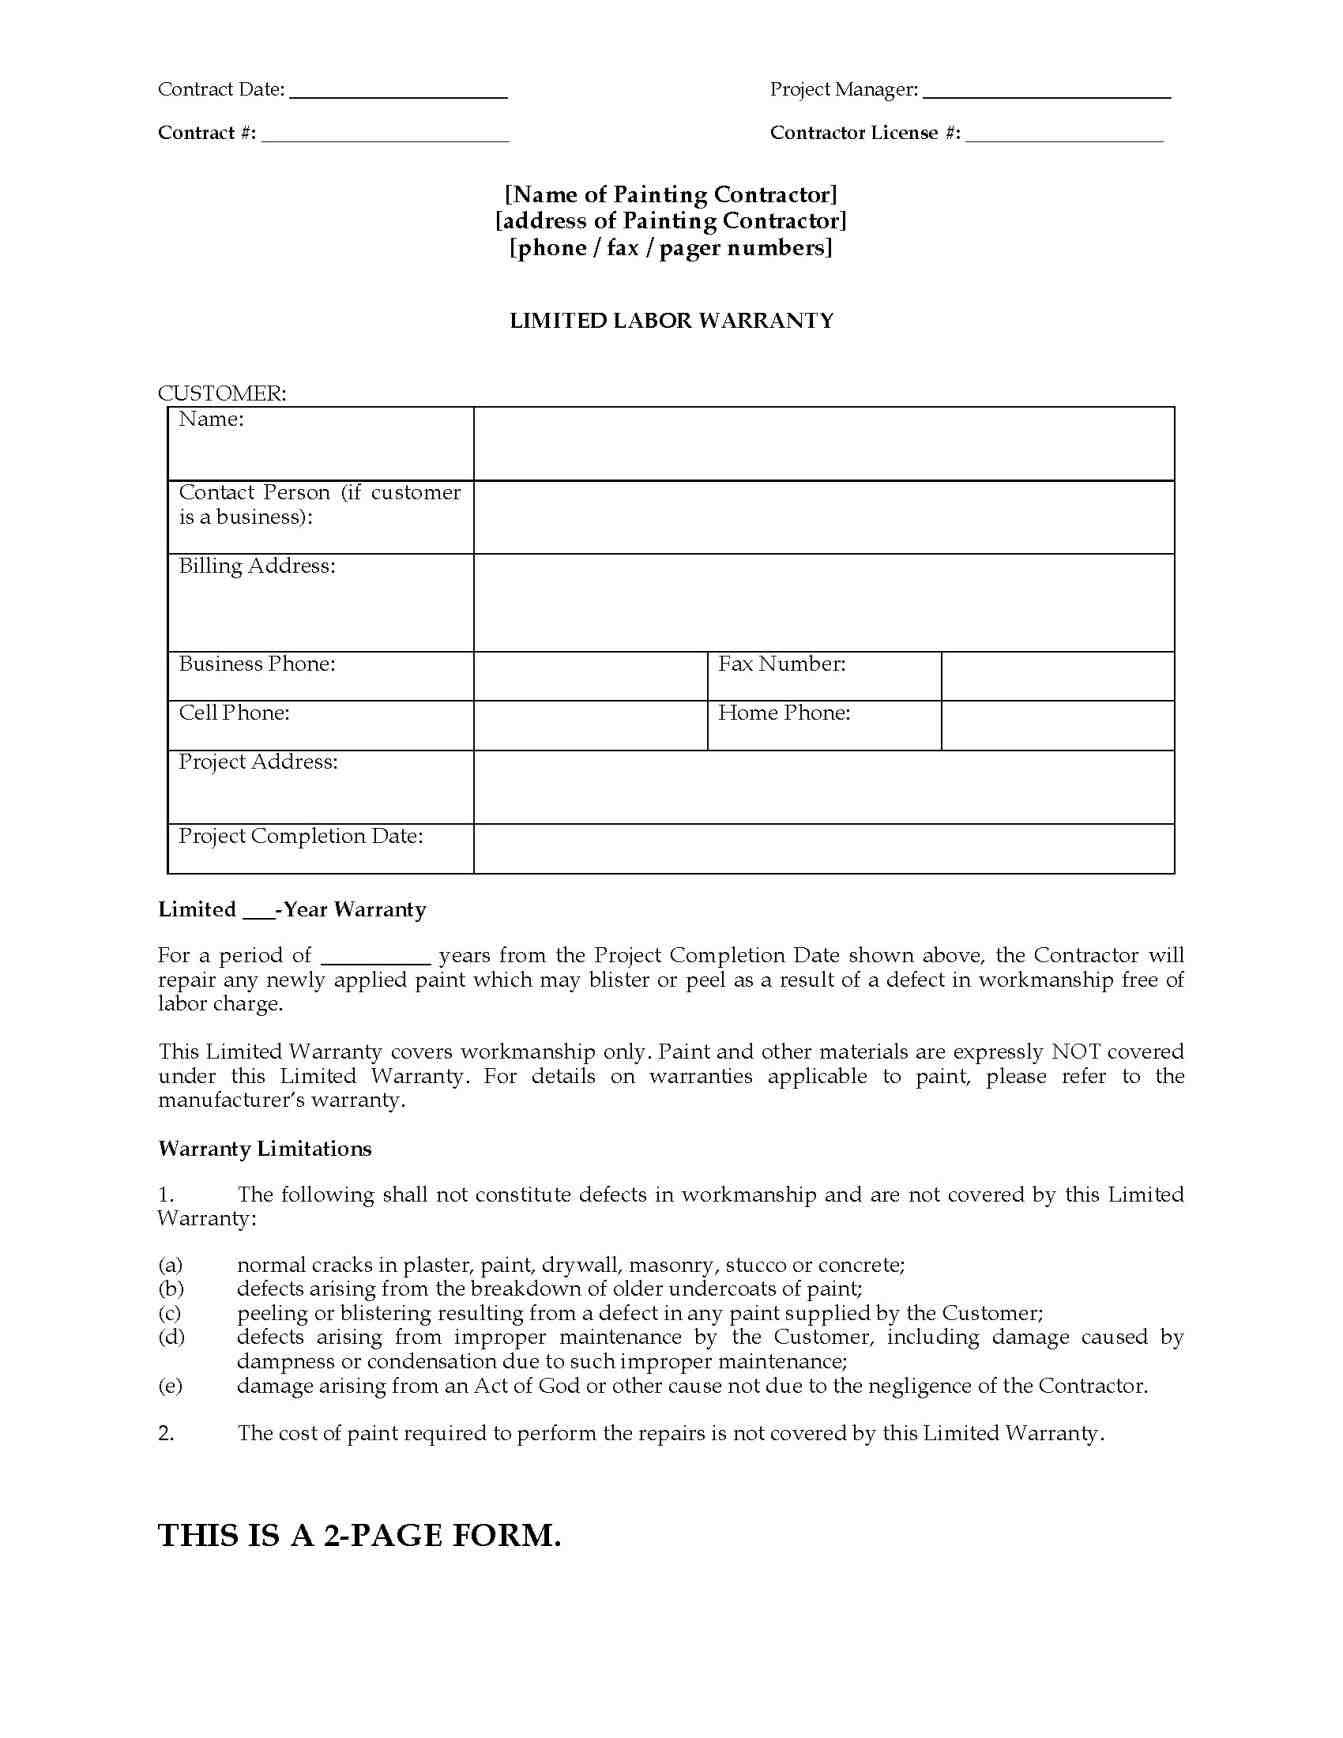 Subcontractor Warranty Letter Template Samples